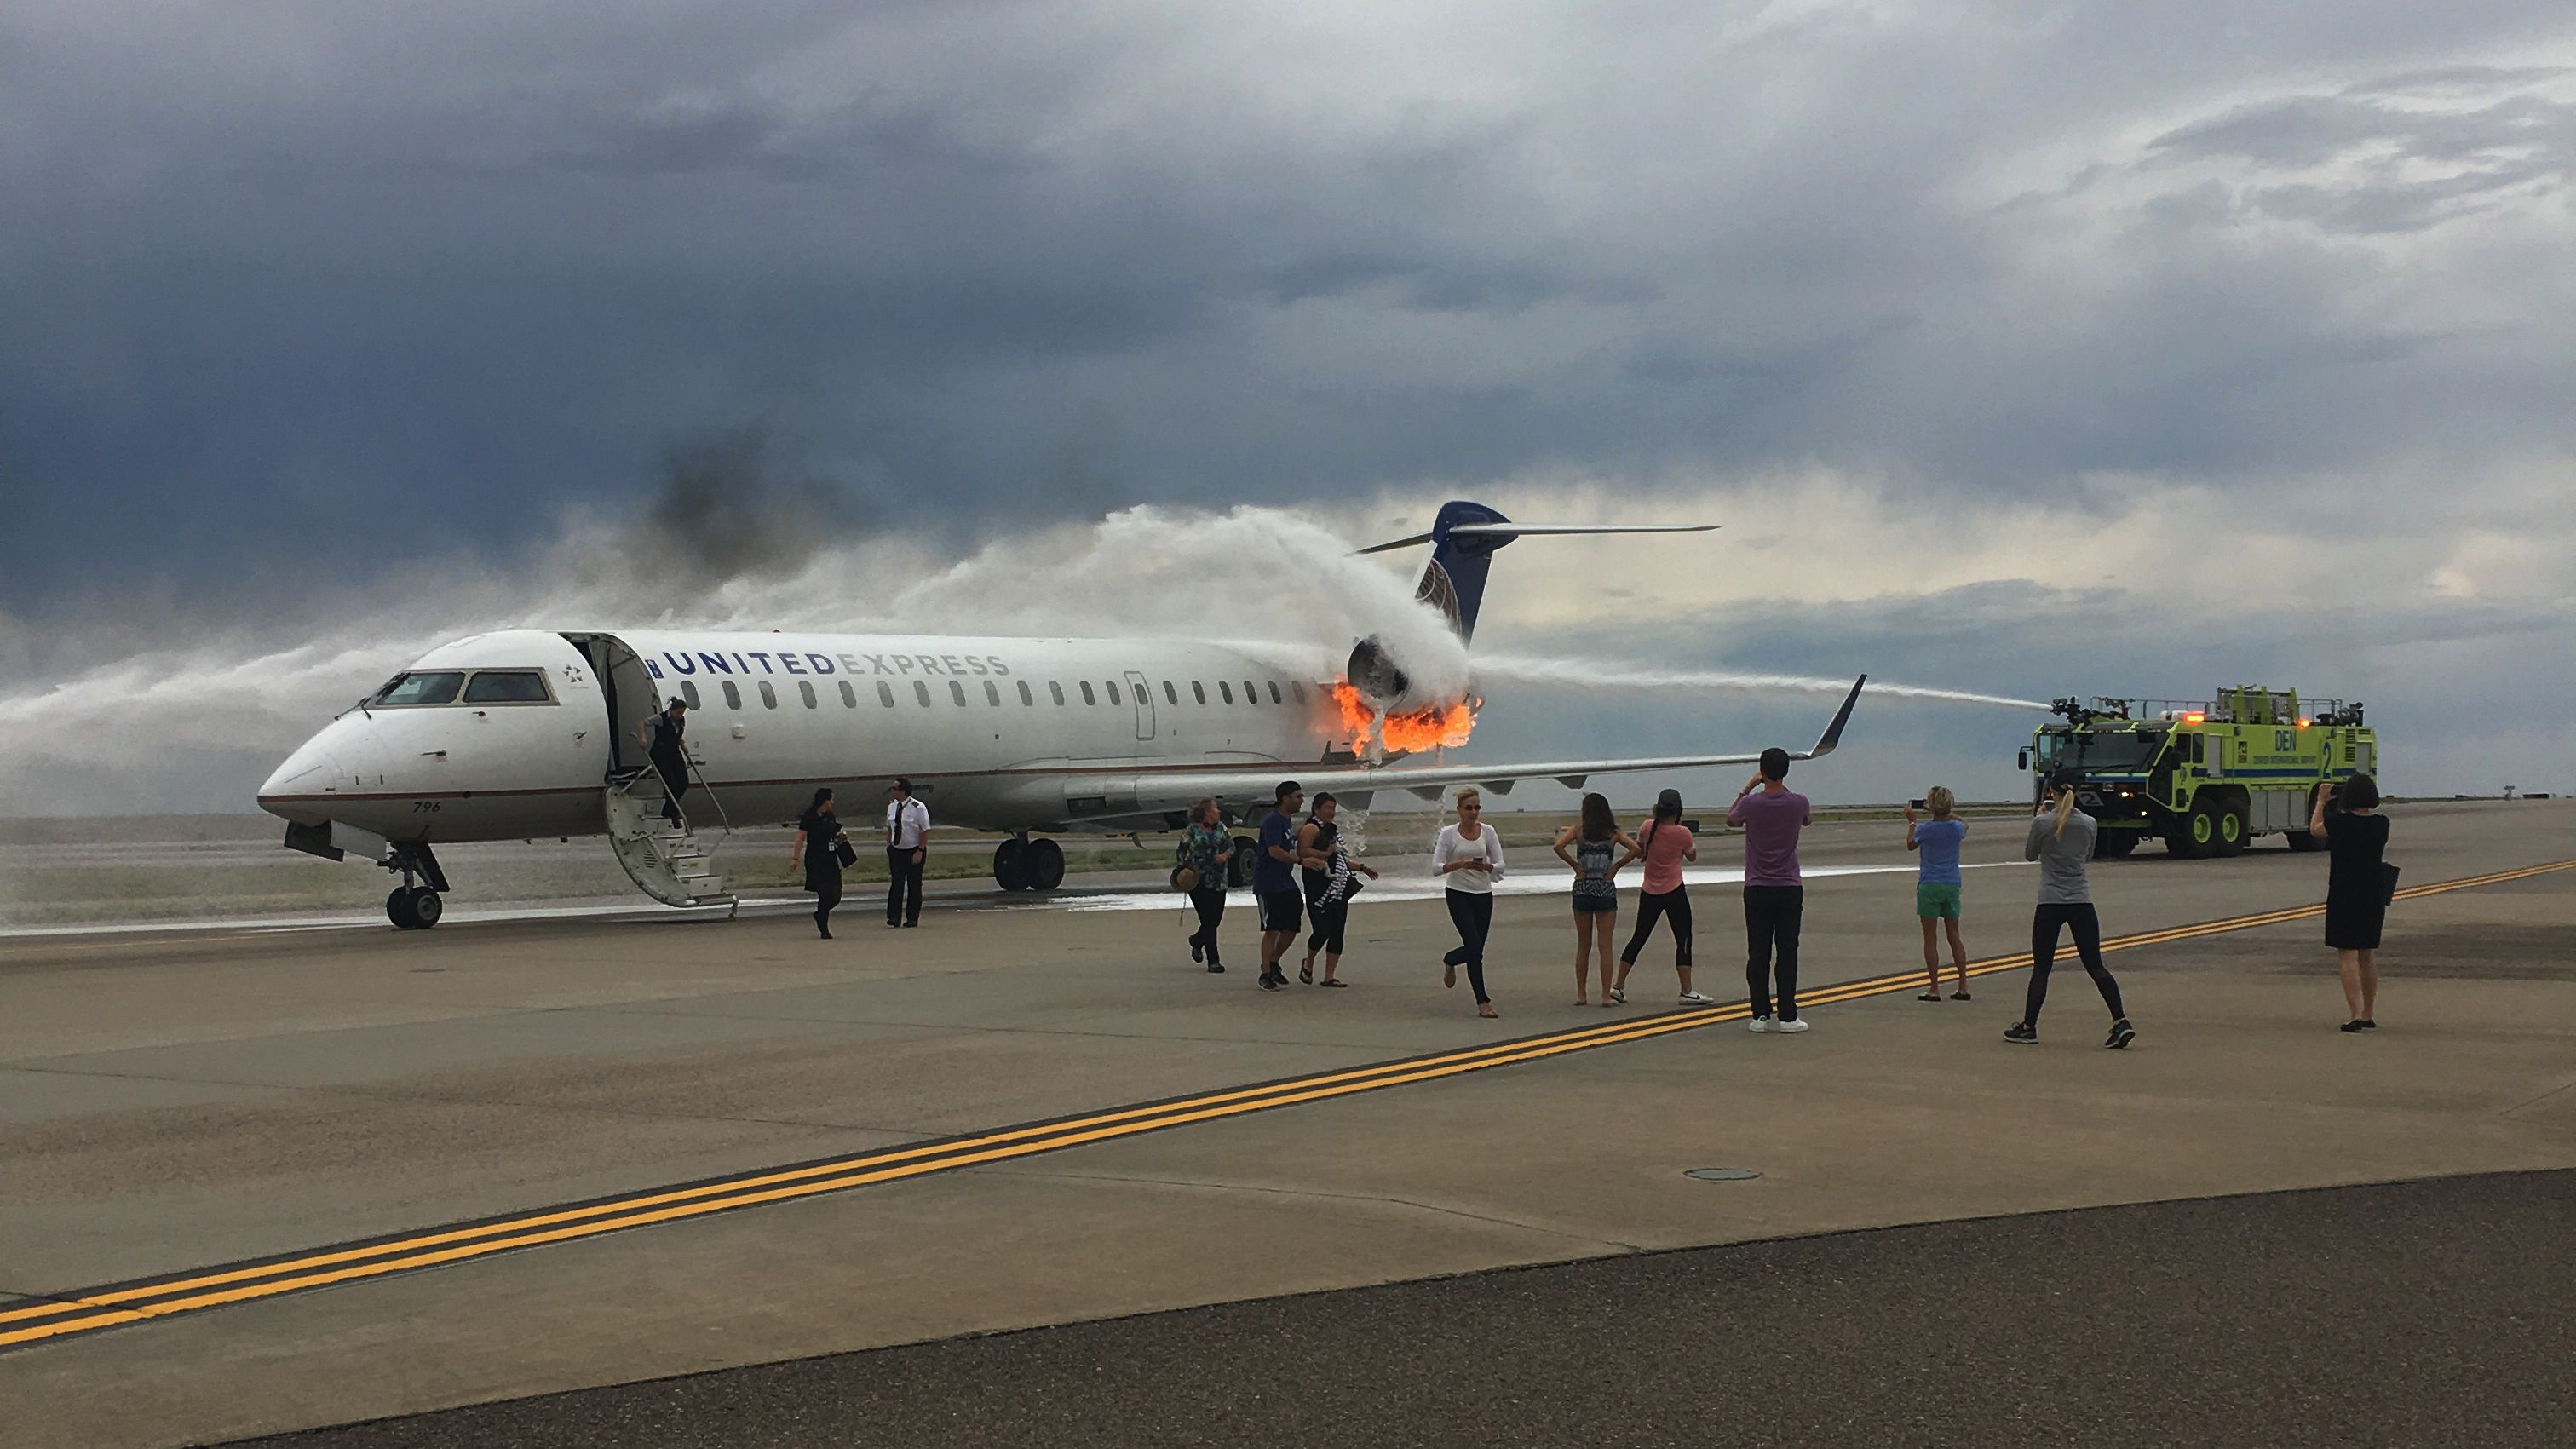 United Express Denver plane on tarmac on fire